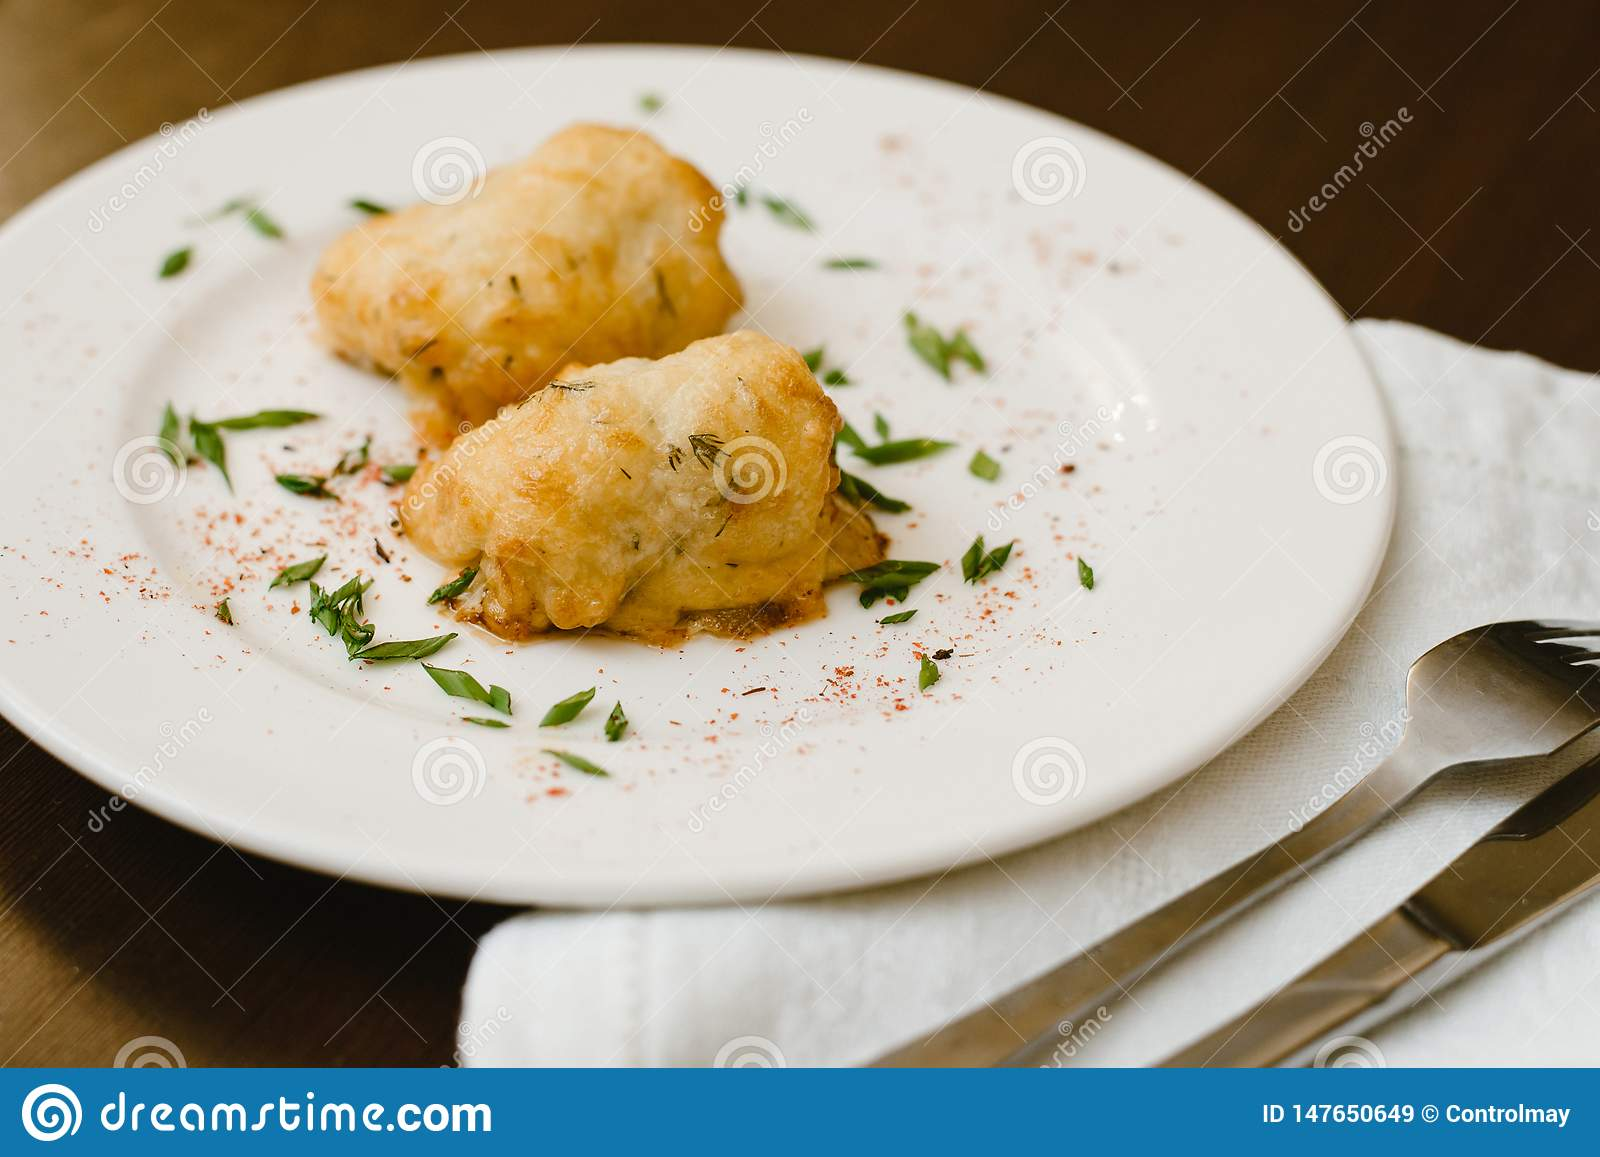 Delicious rolls of dough with grass on a plate.